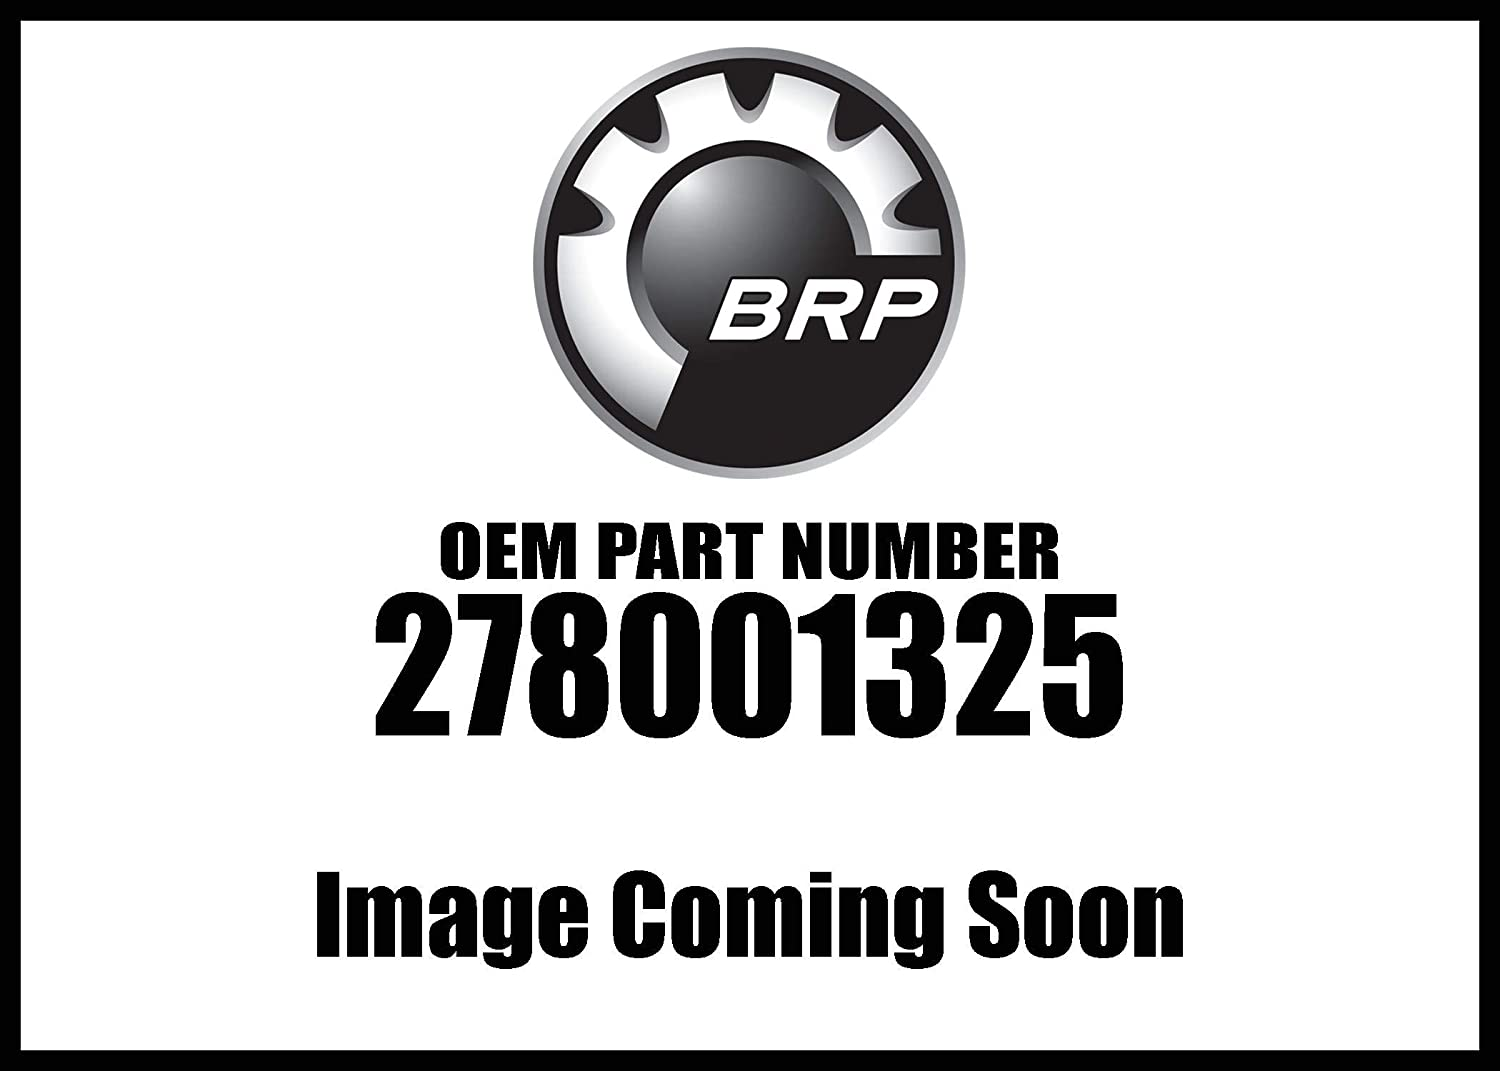 Can-Am 1998-2018 Outlander Max 800R Gtx Rfi 5516 Fuse Holder 278001325 New Oem